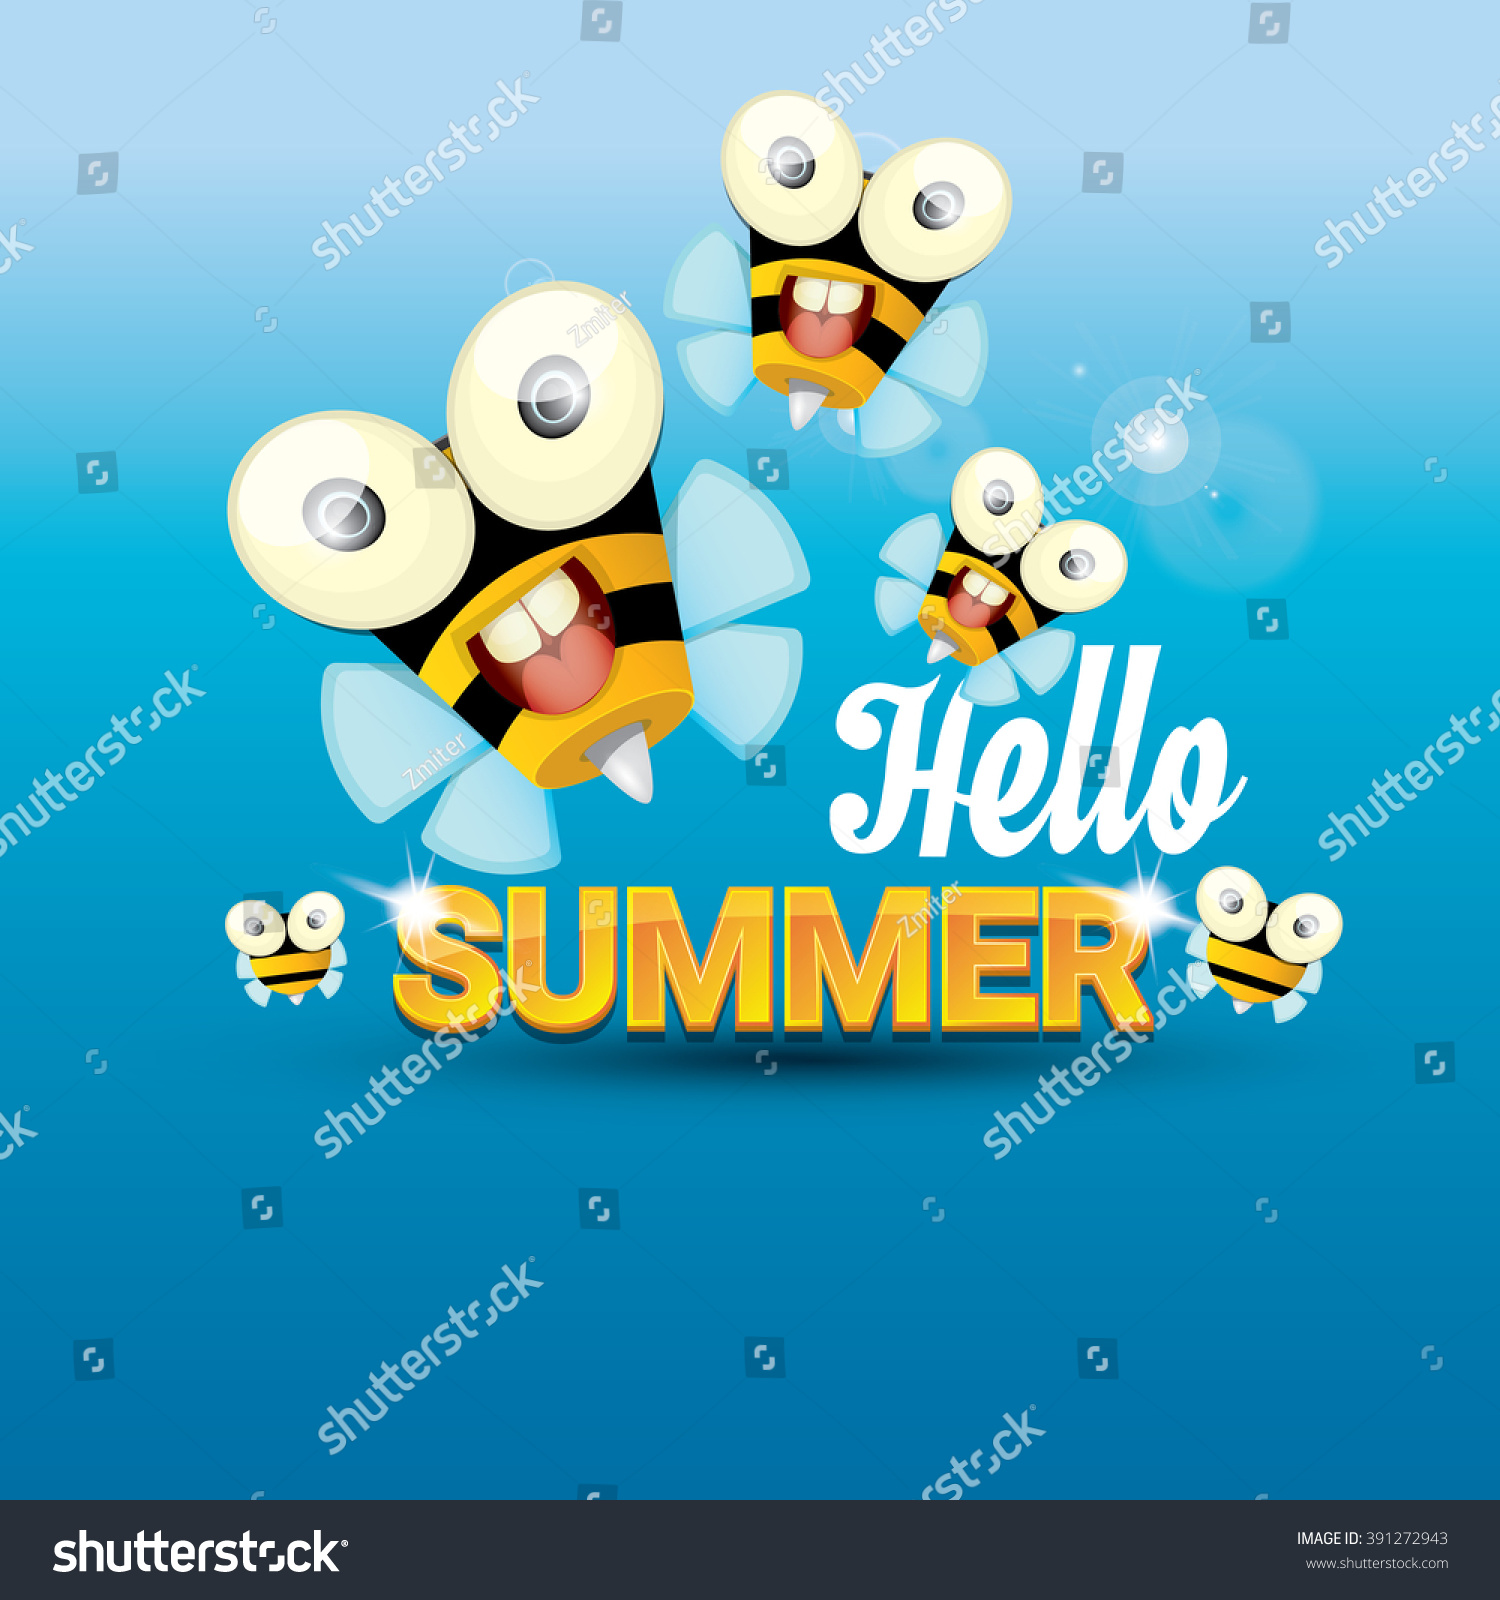 Superior Hello Summer Vector Background With Sunny Sky And Baby Bee Flying. Kids  Background With Funny